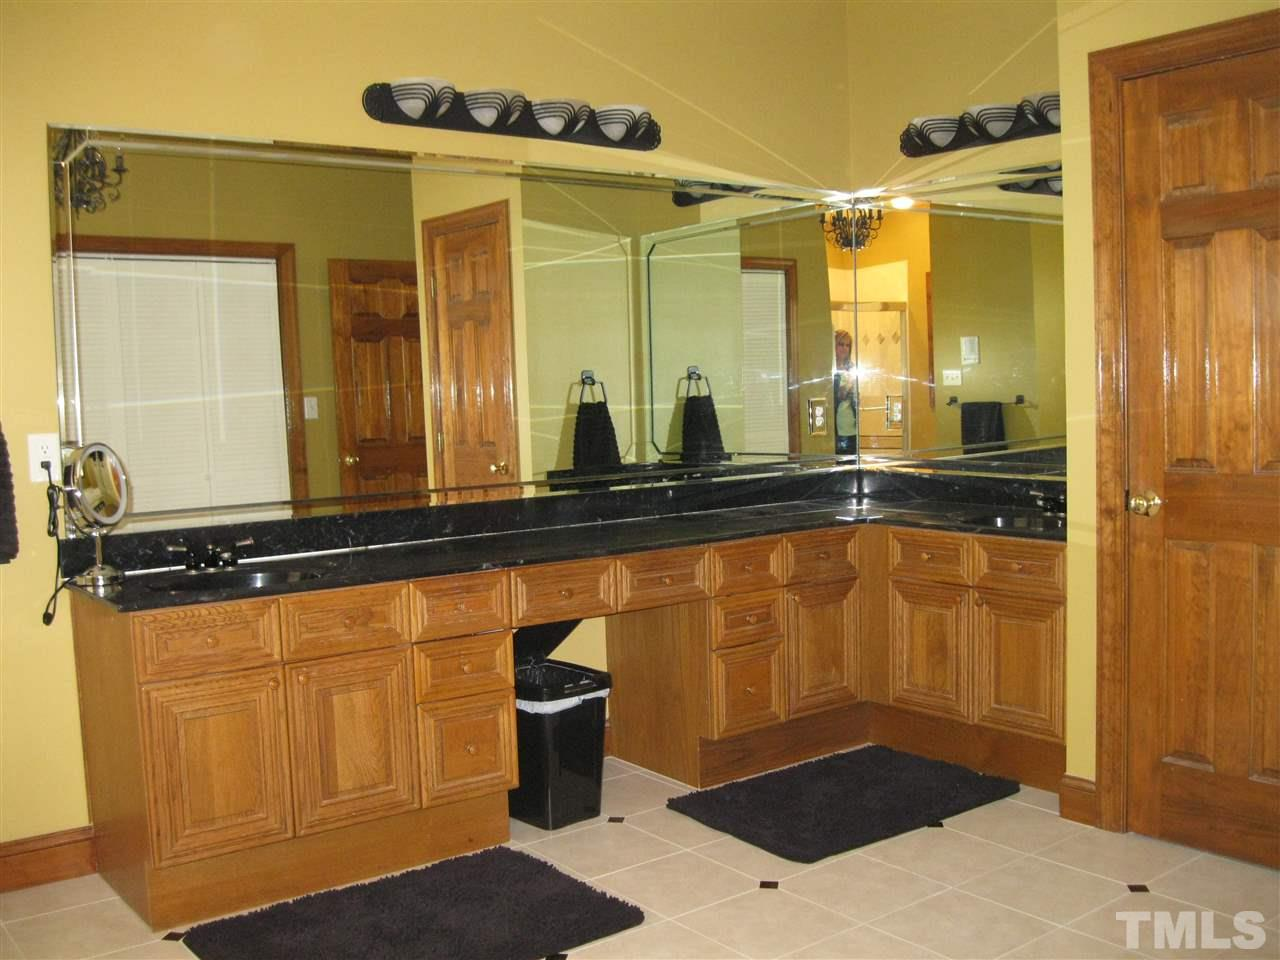 Double sinks, whirlpool tub & separate shower.